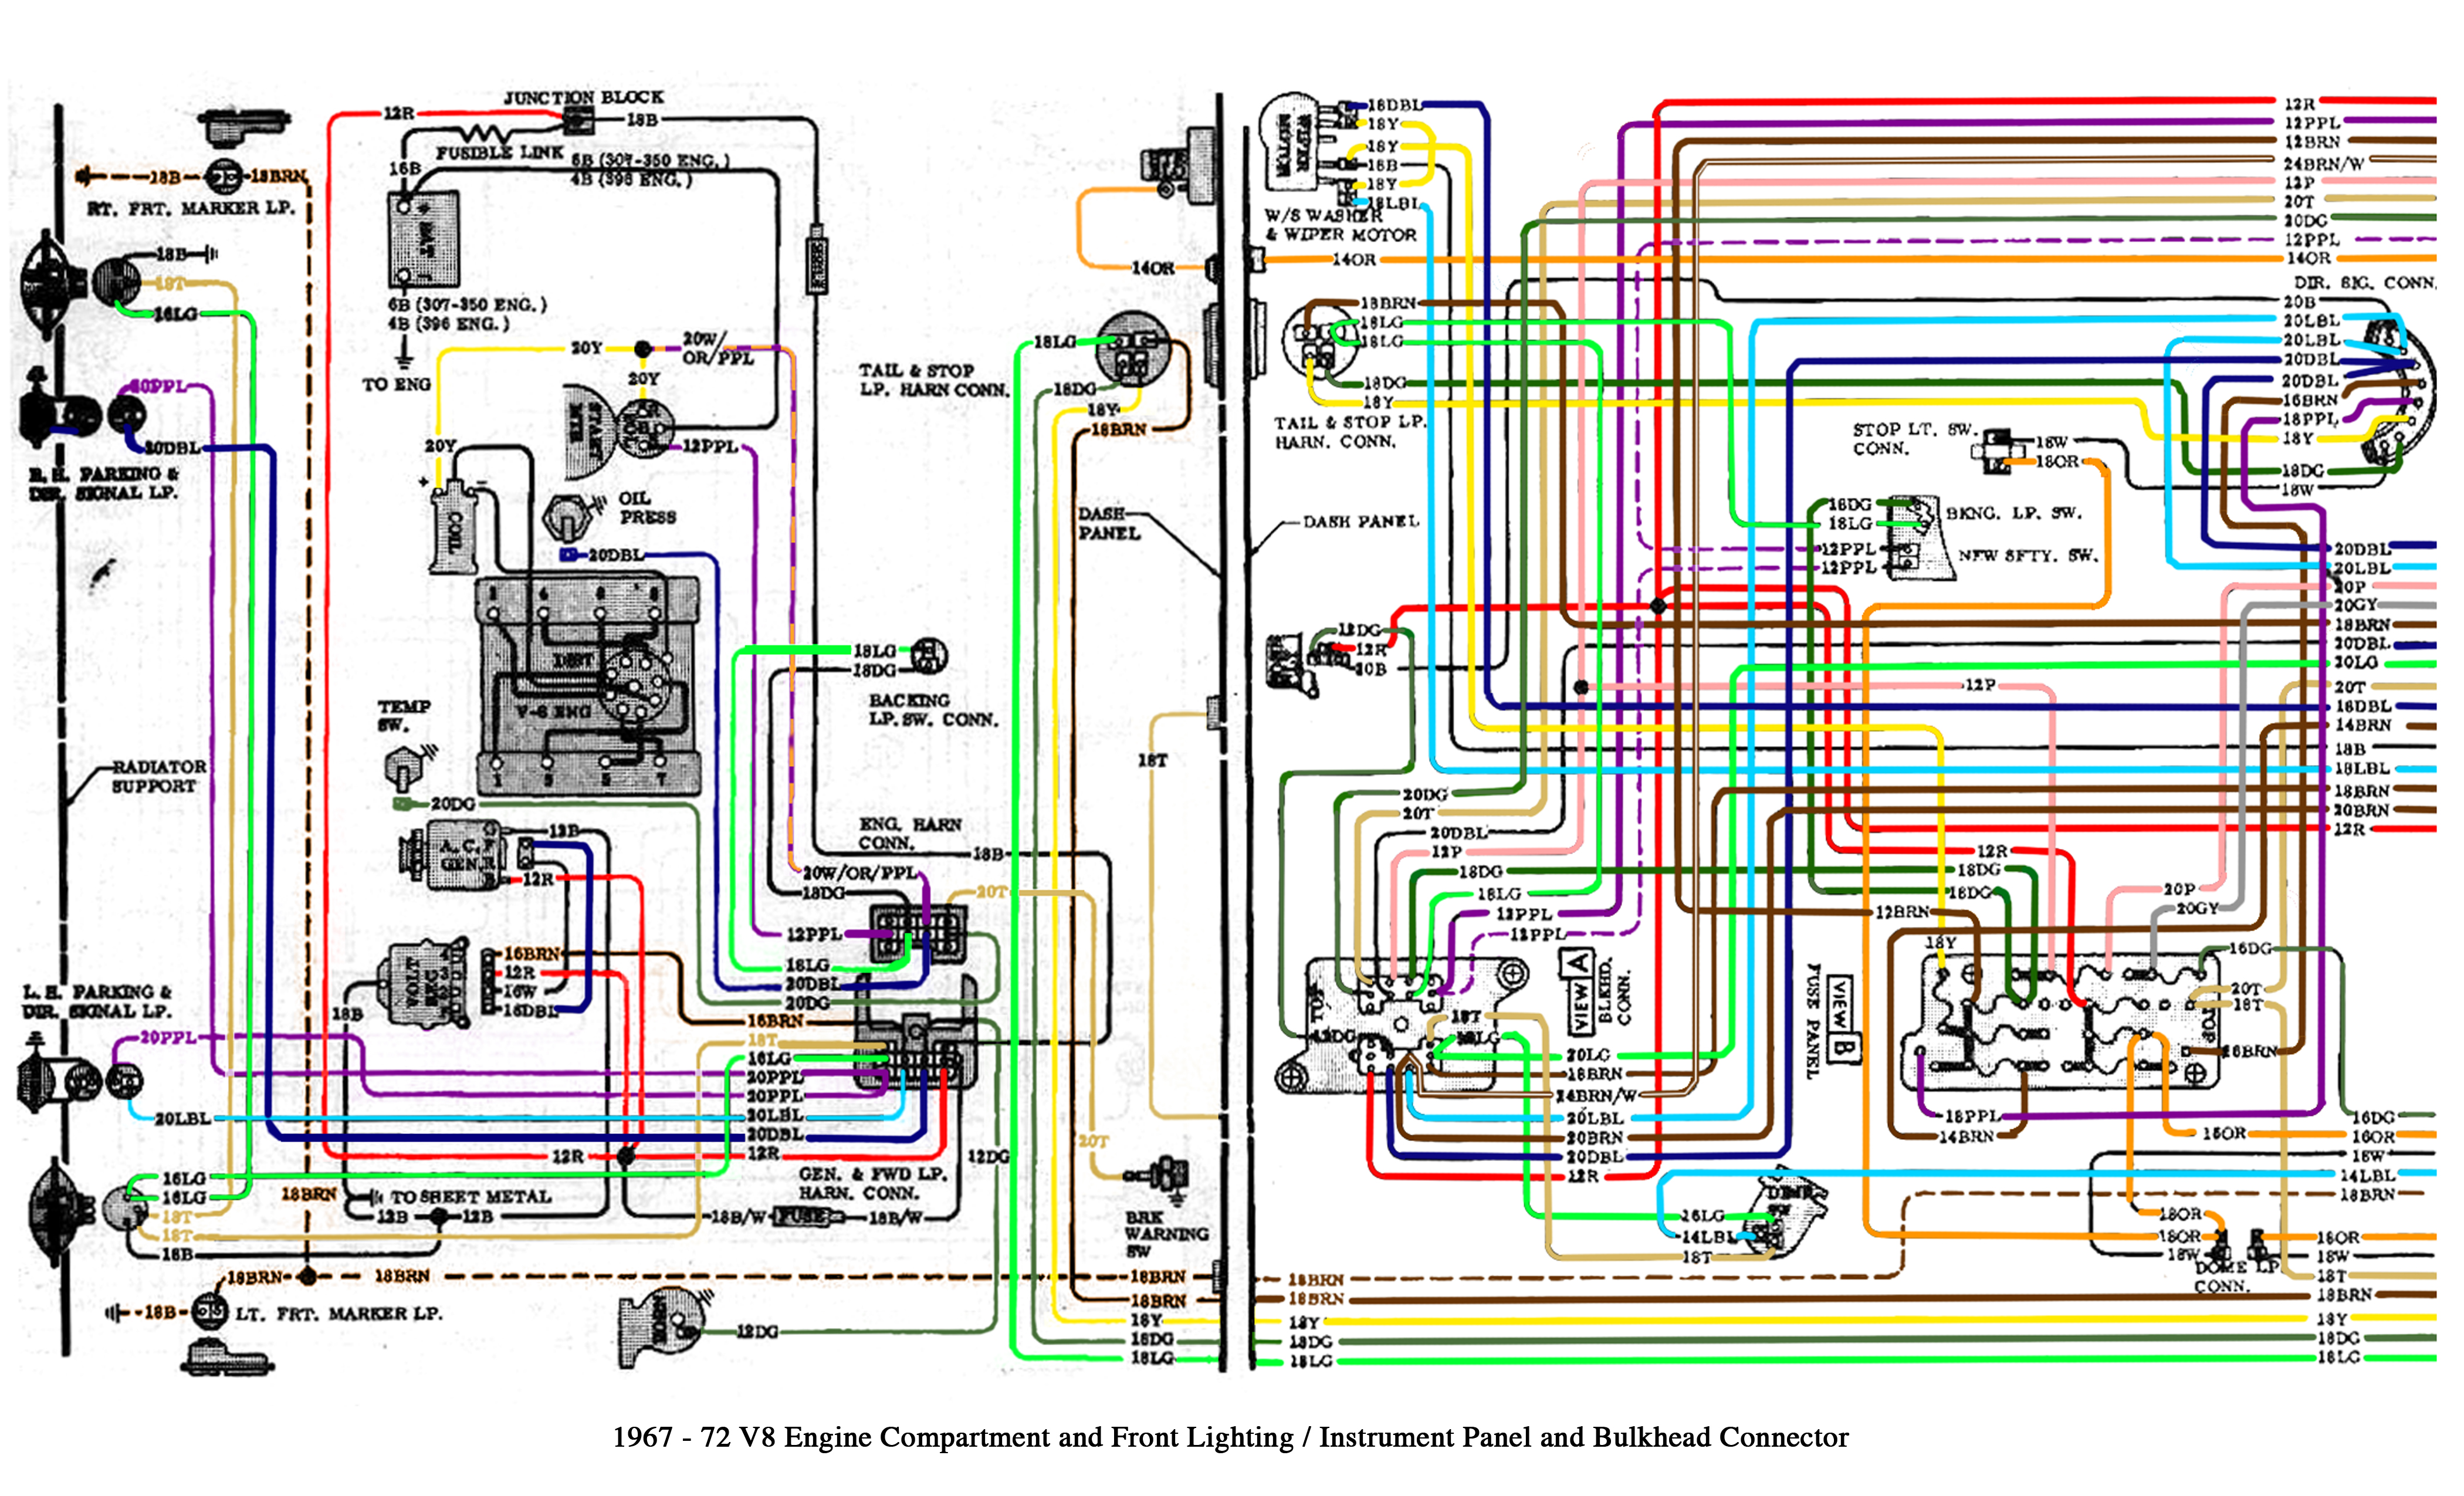 1970 Impala Fuse Box Wiring Library 91 Mustang Diagram 70 Chevy Simple For